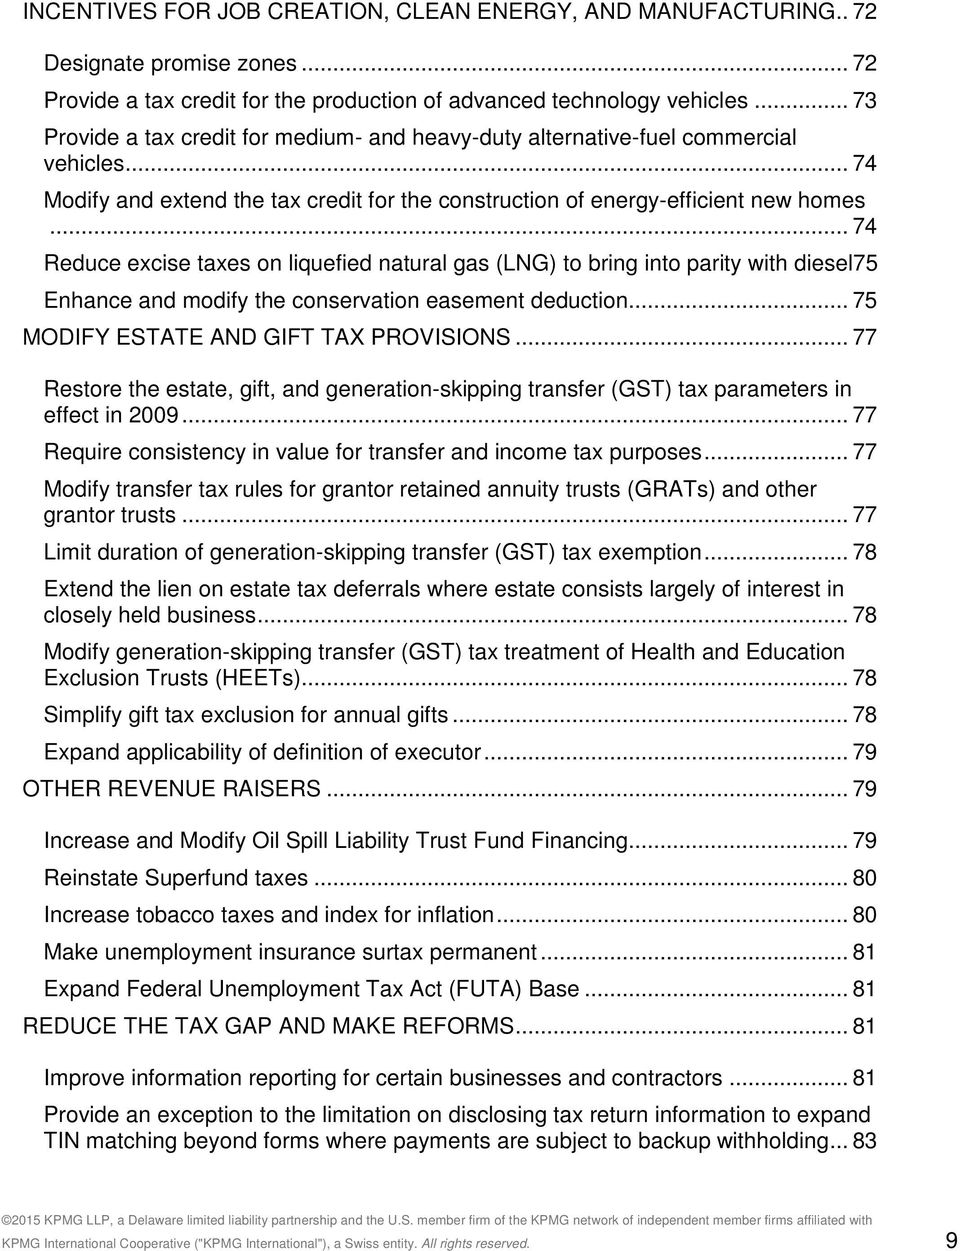 .. 74 Reduce excise taxes on liquefied natural gas (LNG) to bring into parity with diesel75 Enhance and modify the conservation easement deduction... 75 MODIFY ESTATE AND GIFT TAX PROVISIONS.